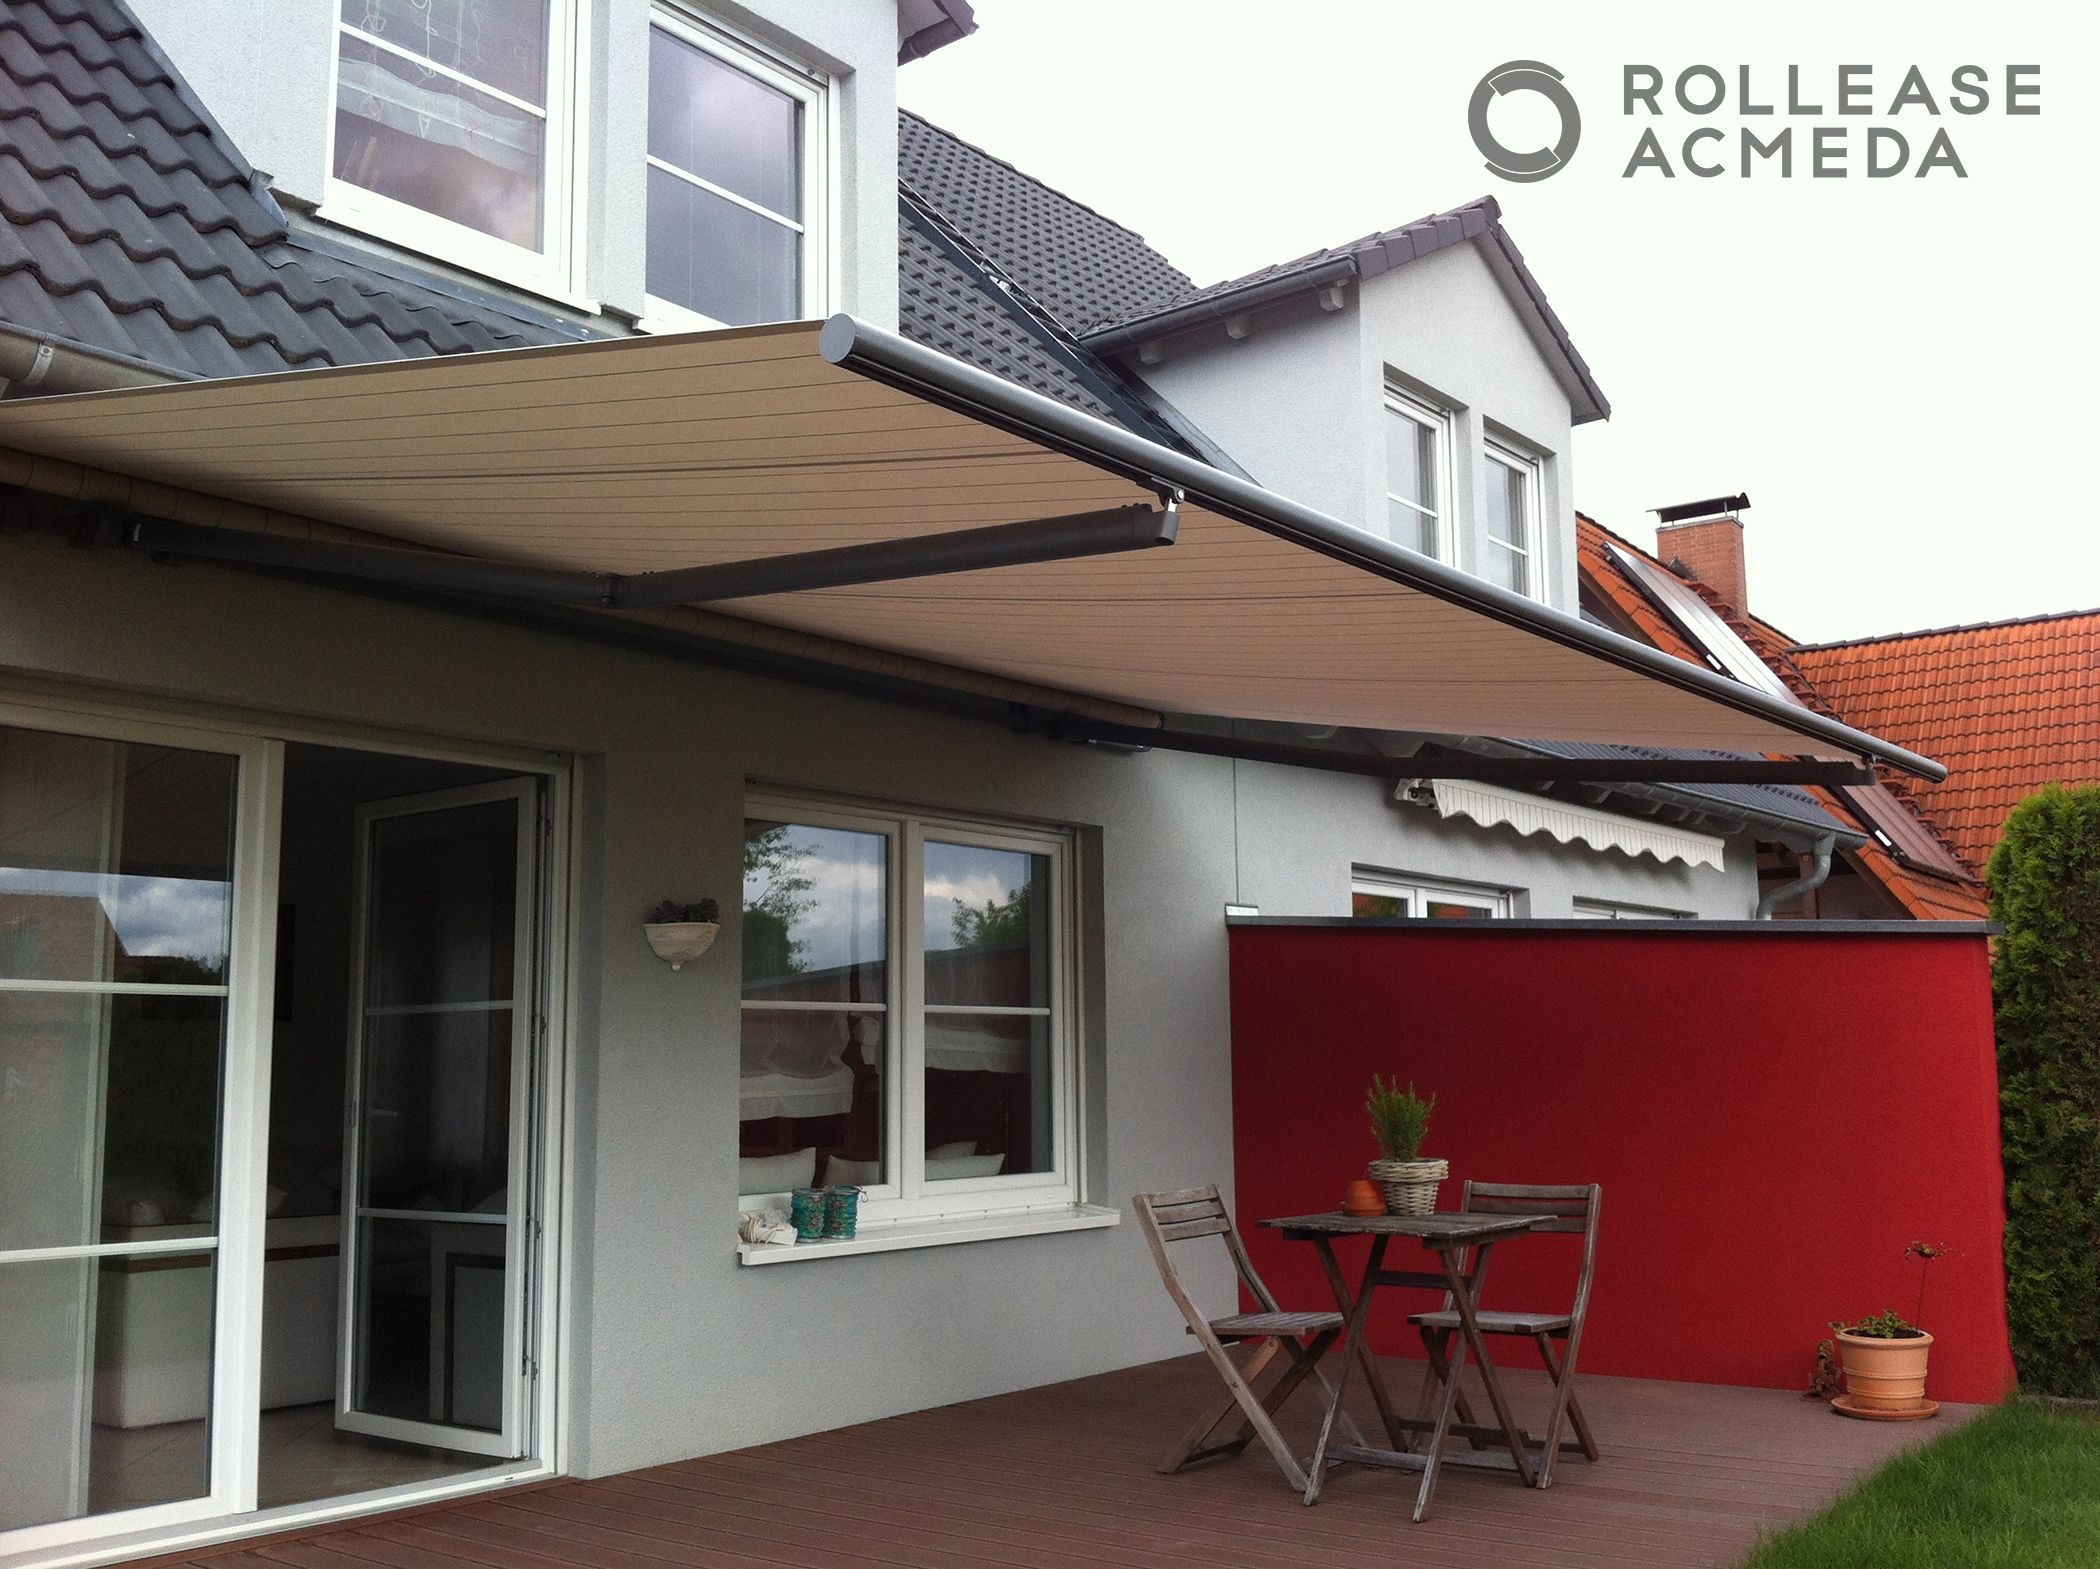 Folding Arm Awnings Melbourne & Yarra Valley | Window ...